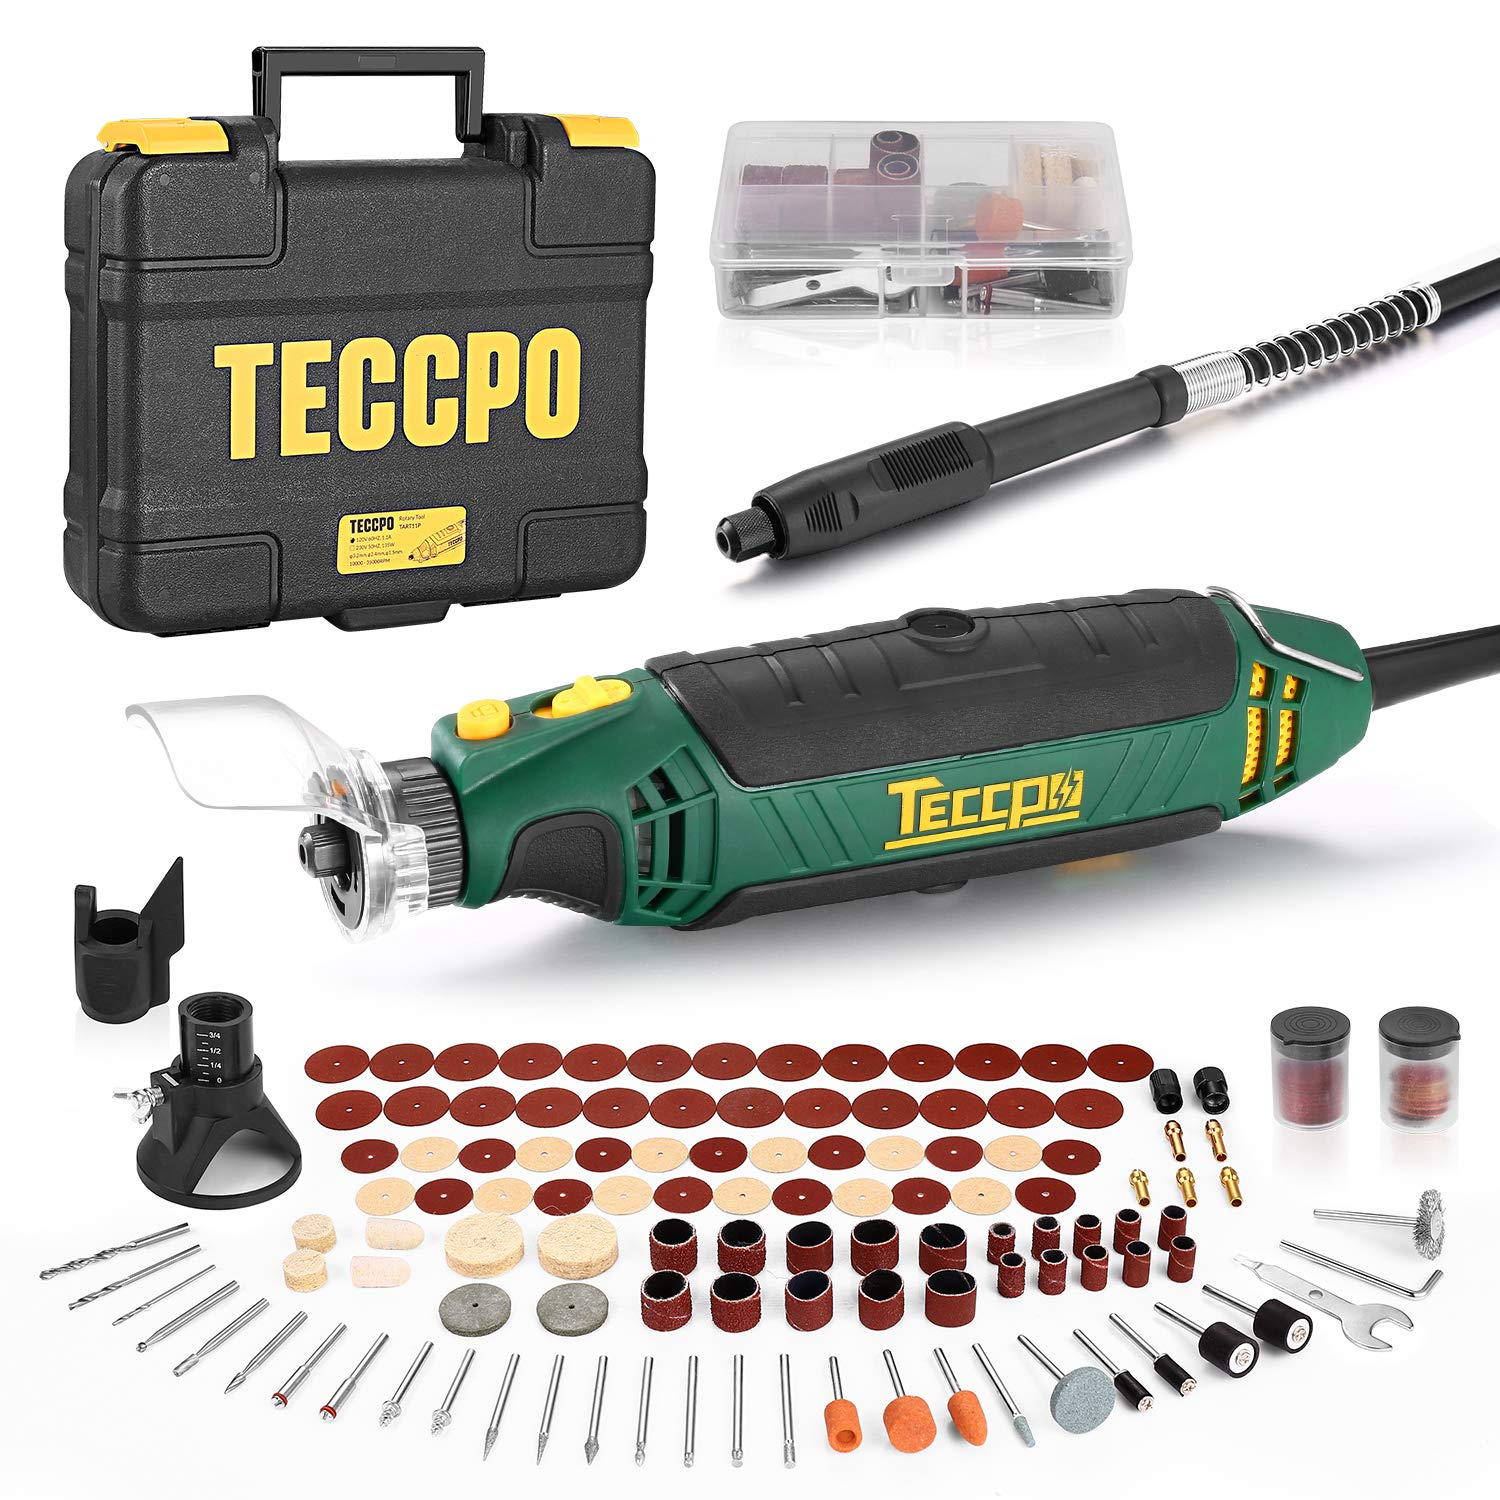 TECCPO Rotary Tool Kit, 110 Accessories, 4 Attachments, Carrying Case, 6 Variable Speed with Flex shaft, Protective Shield, Sharpening Guide, Cutting Guide, Ideal for Crafting Project and DIY